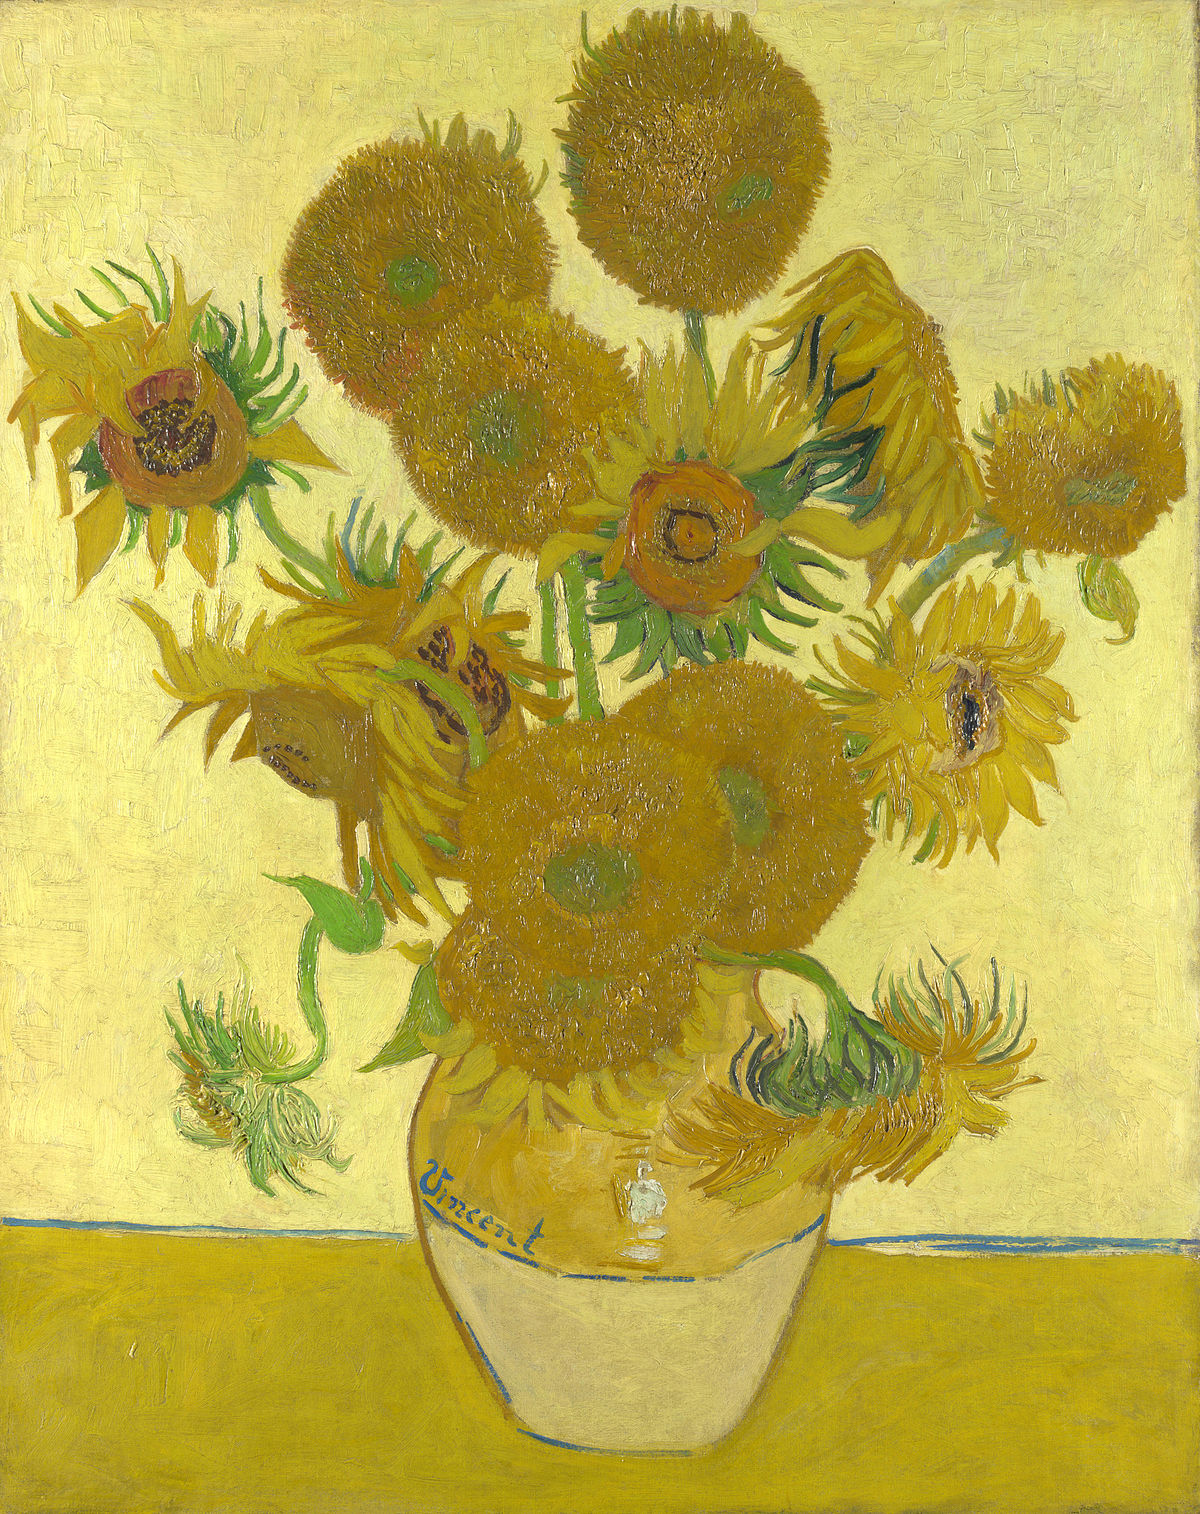 Sunflowers van gogh series wikipedia reviewsmspy